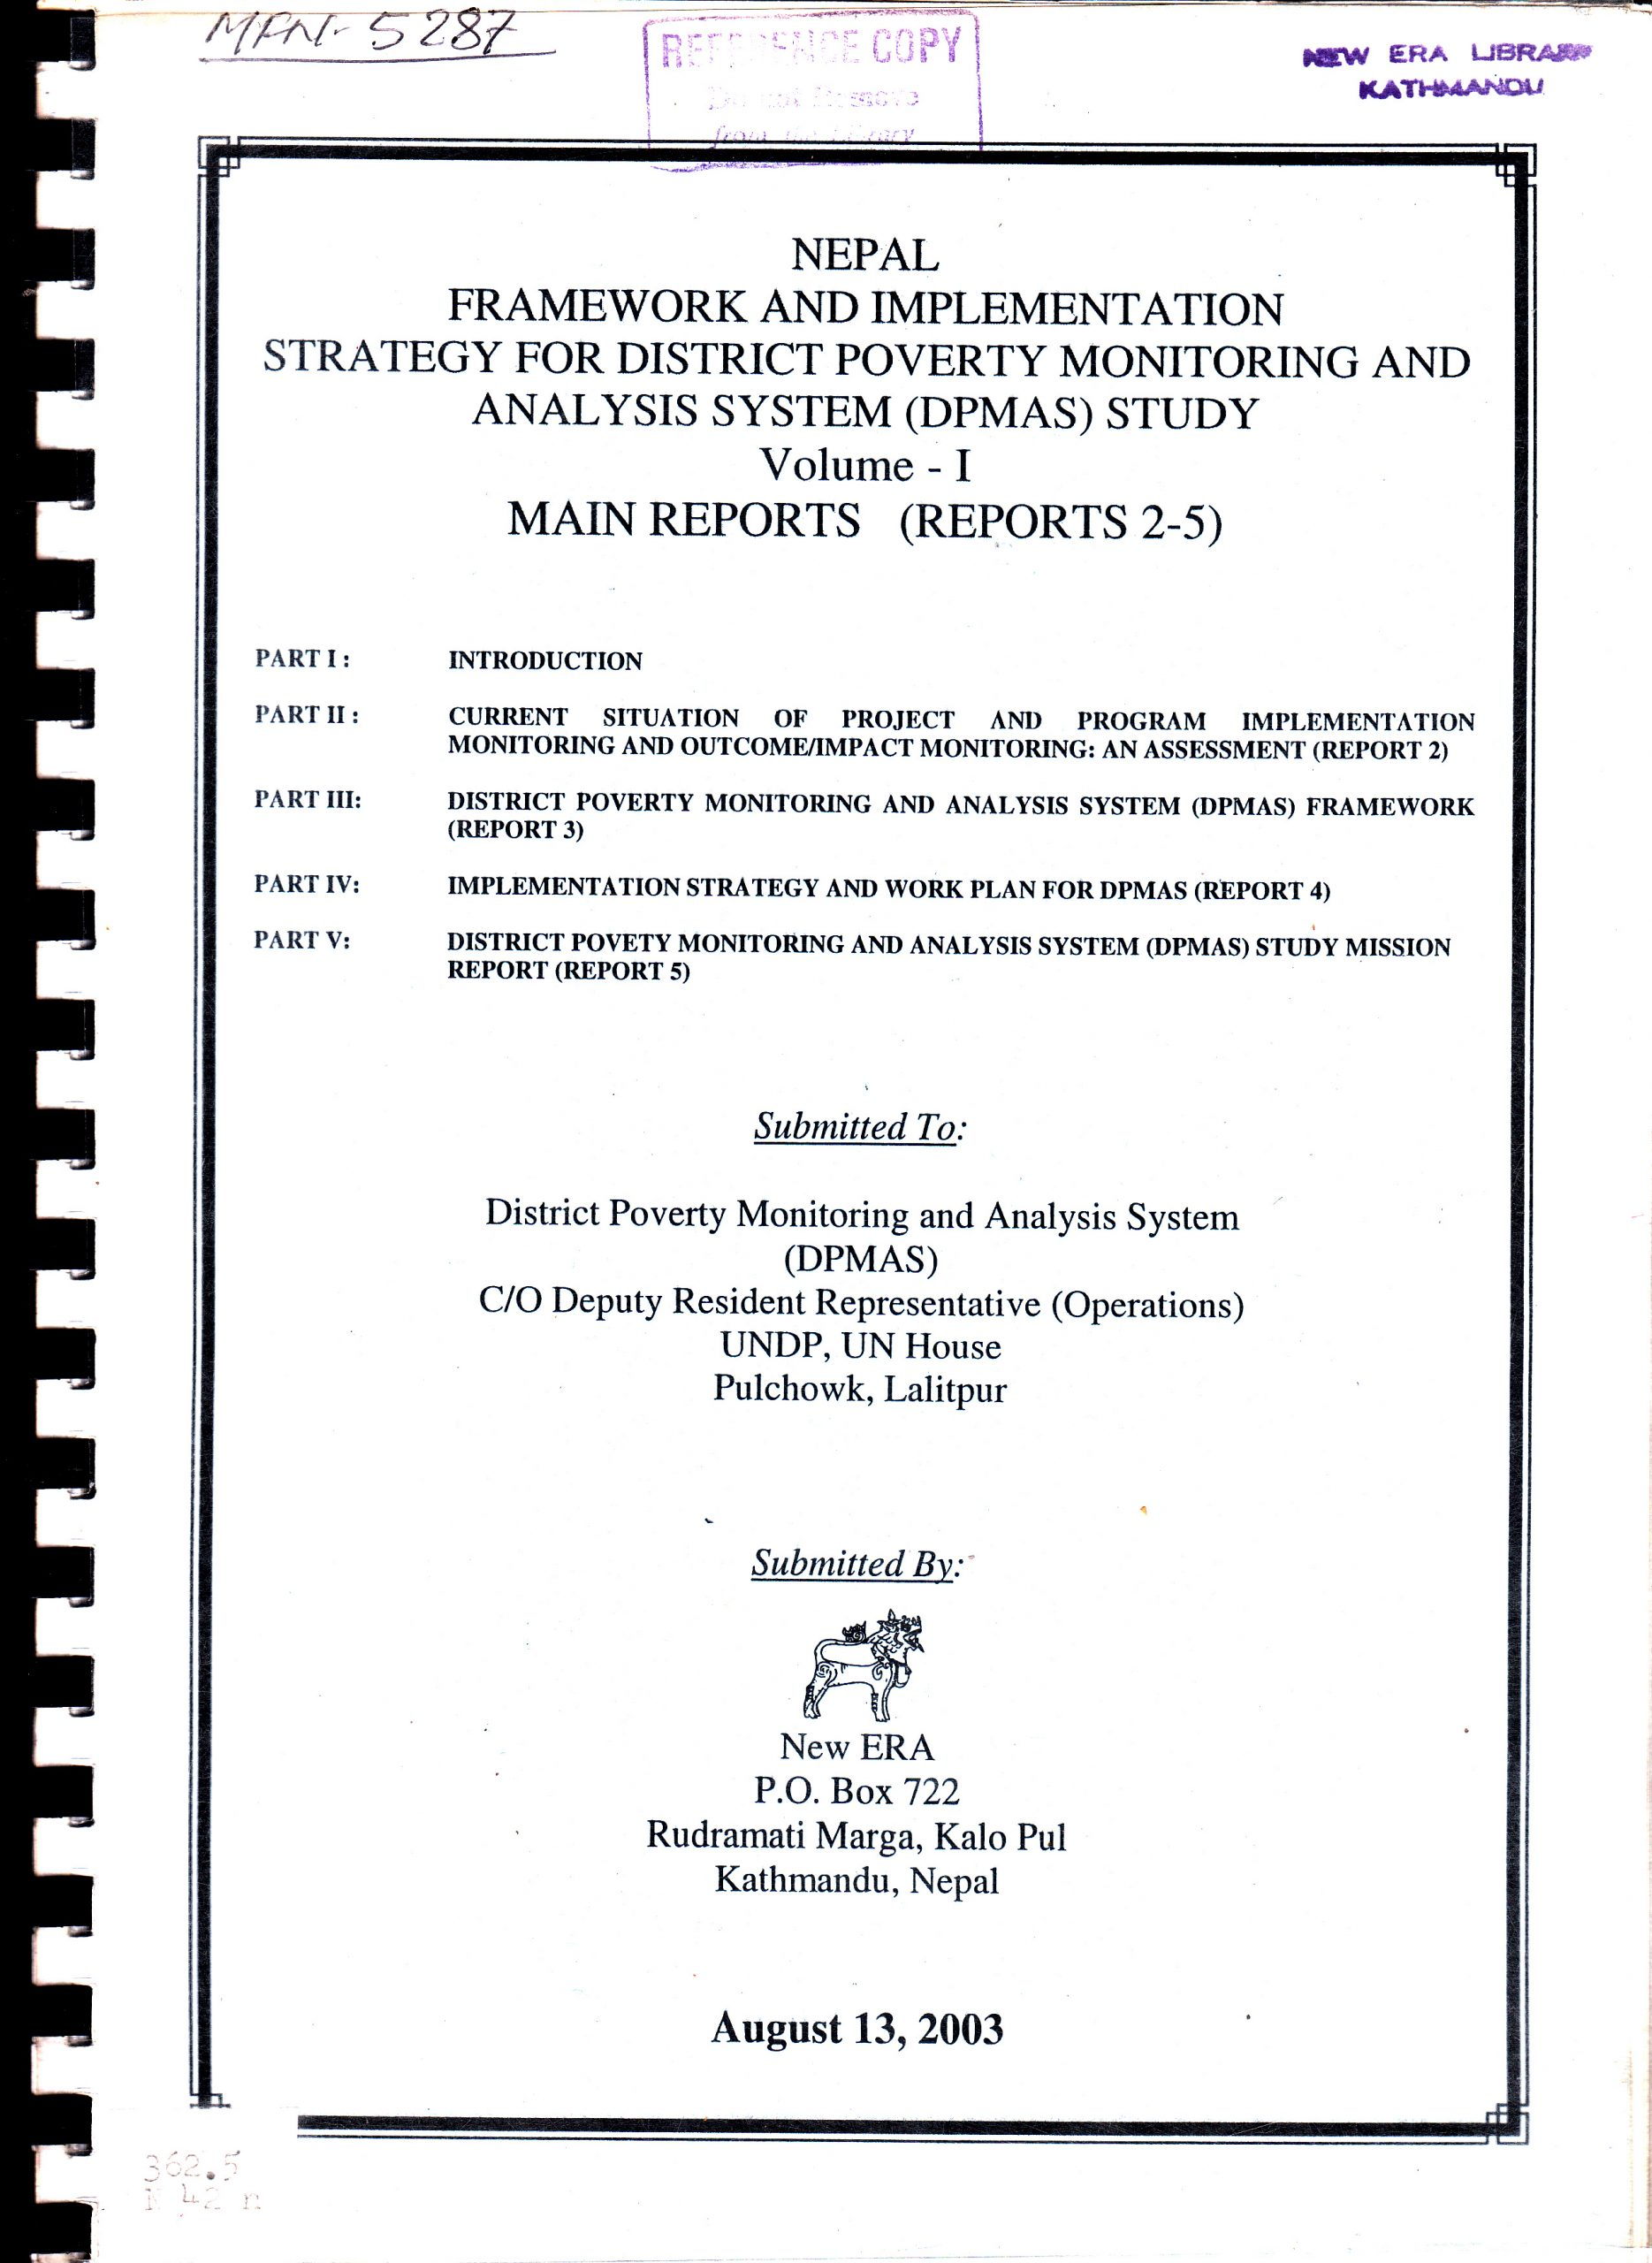 Nepal – Framework and Implementation Strategy for District Poverty Monitoring and Analysis System (DPMAS) Study